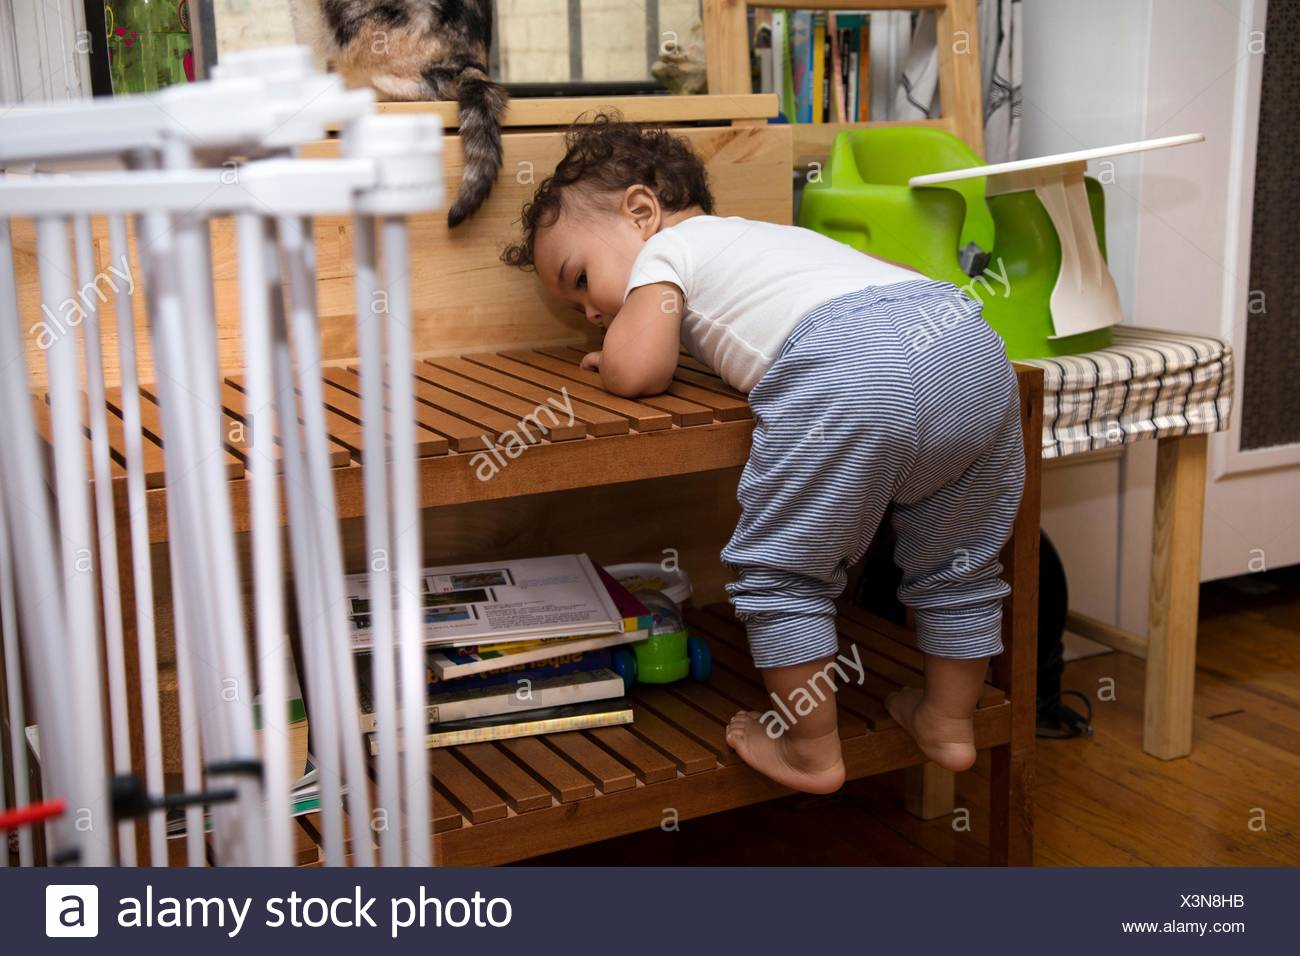 Independent female toddler climbing coffee table in living room - Stock Image